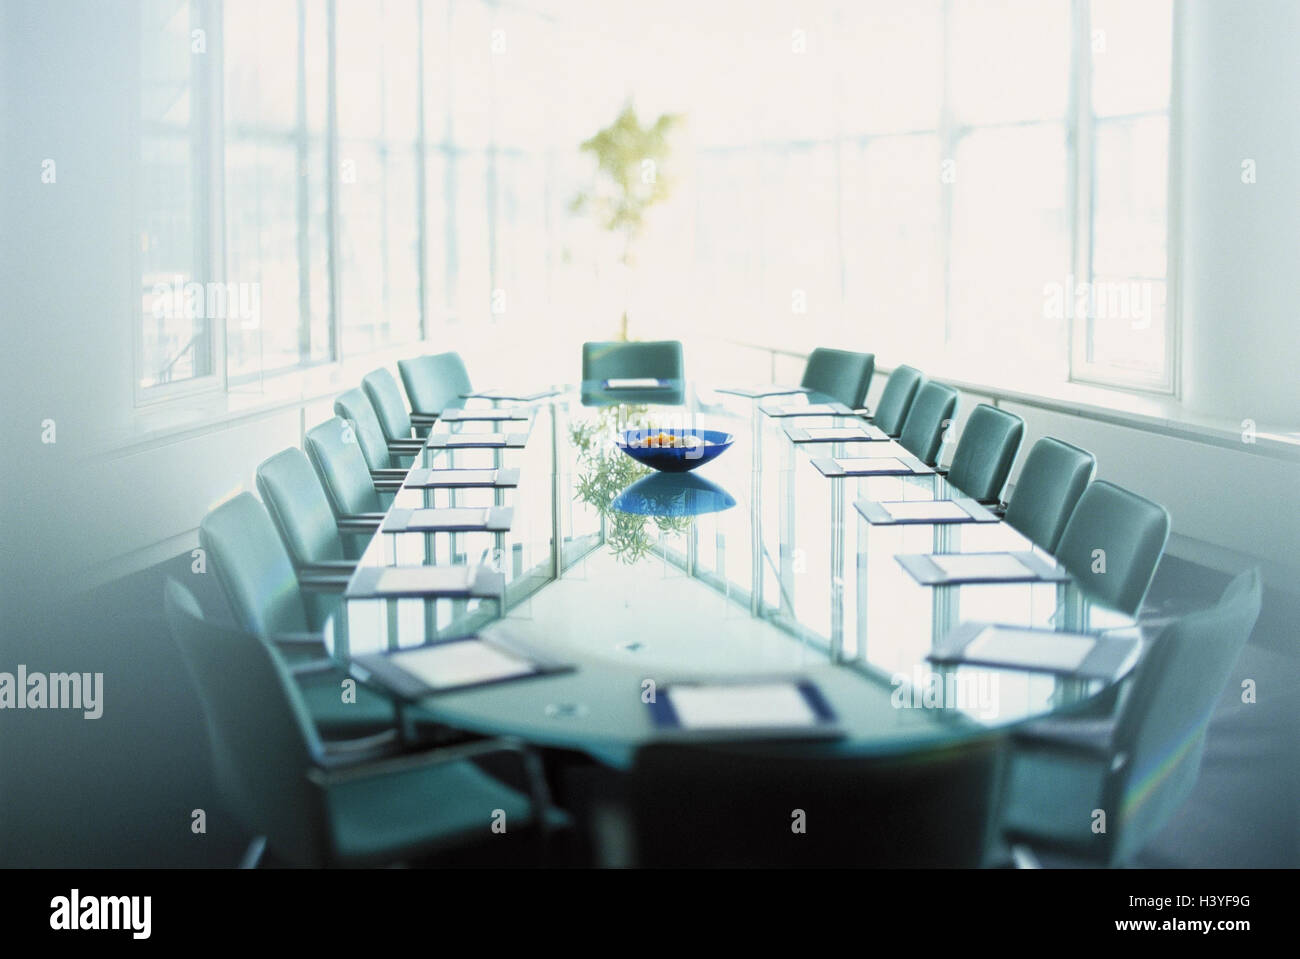 conference room table chairs business bases mirroring business boardroom hall conference table interior design office architecture modern - Conference Table Chairs